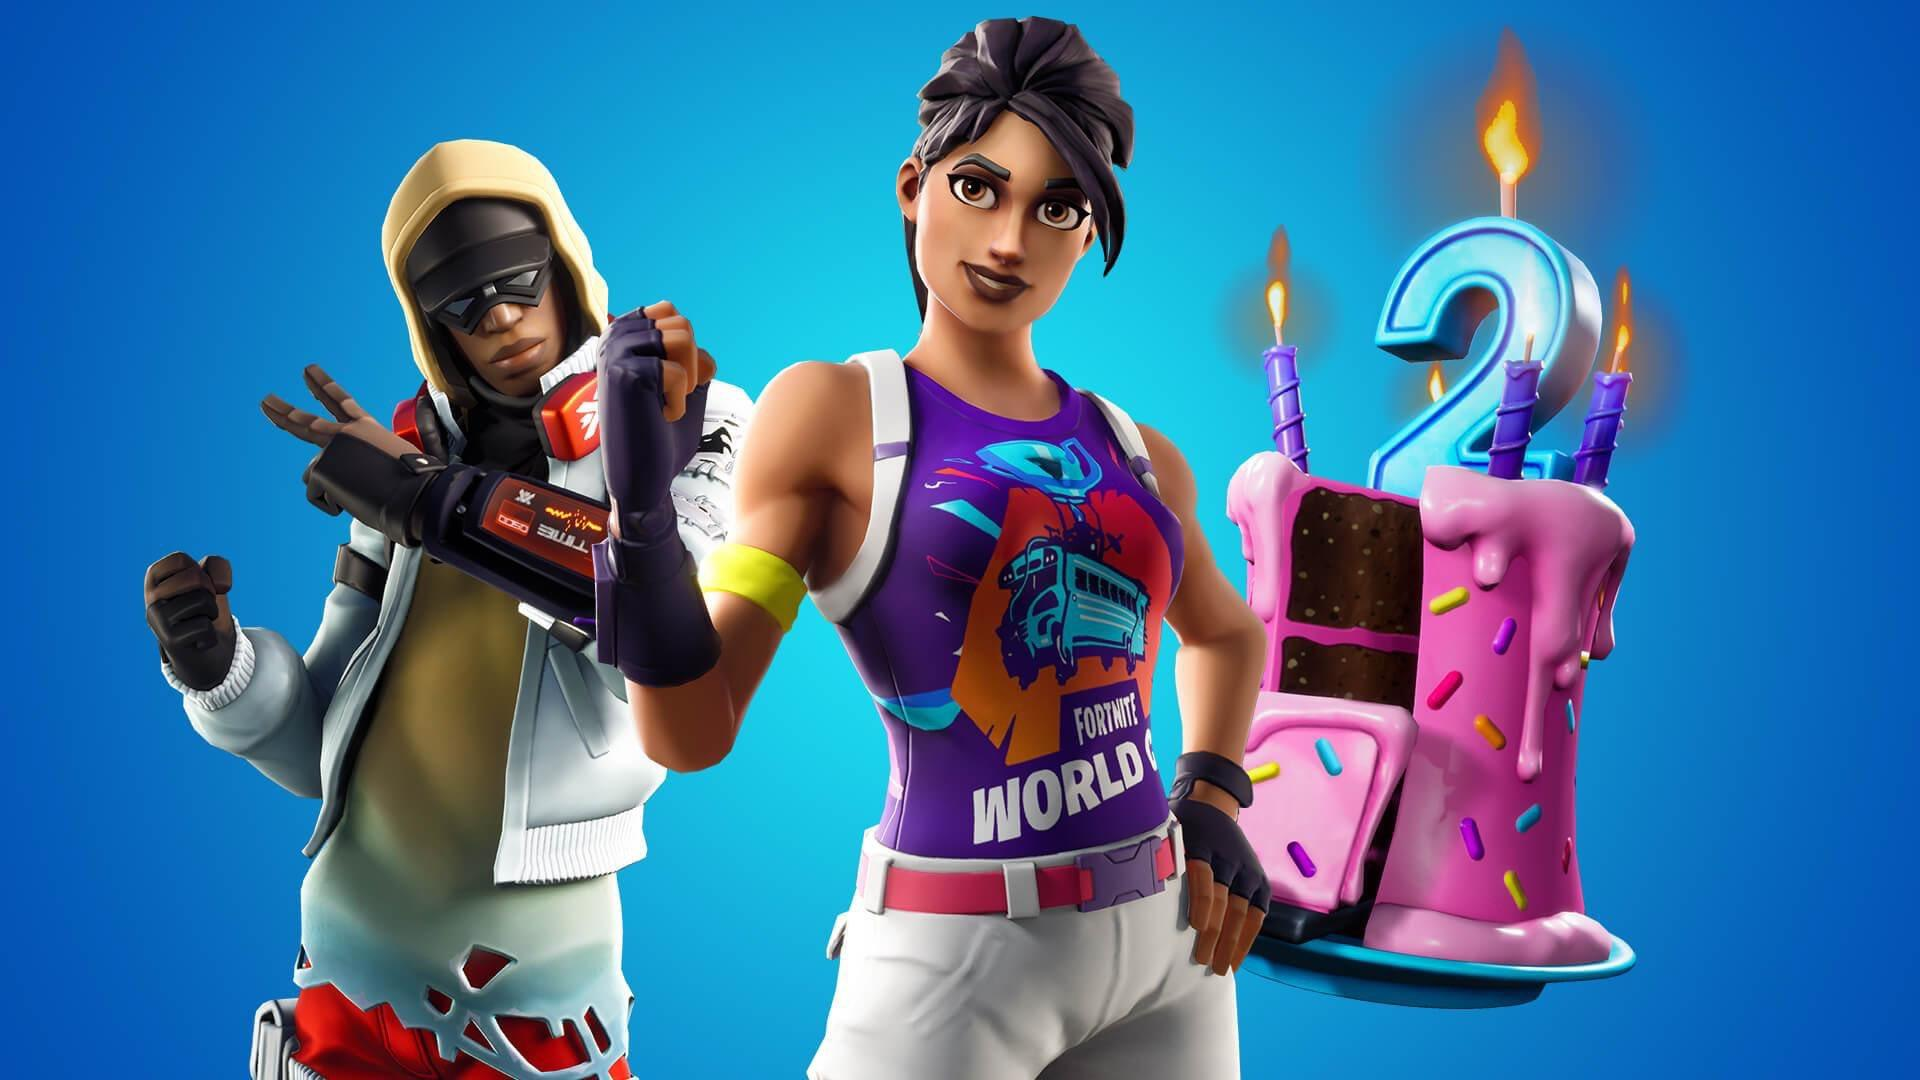 1920x1080 Happy 2nd Birthday to Fortnite! - All Challenge Details + ...